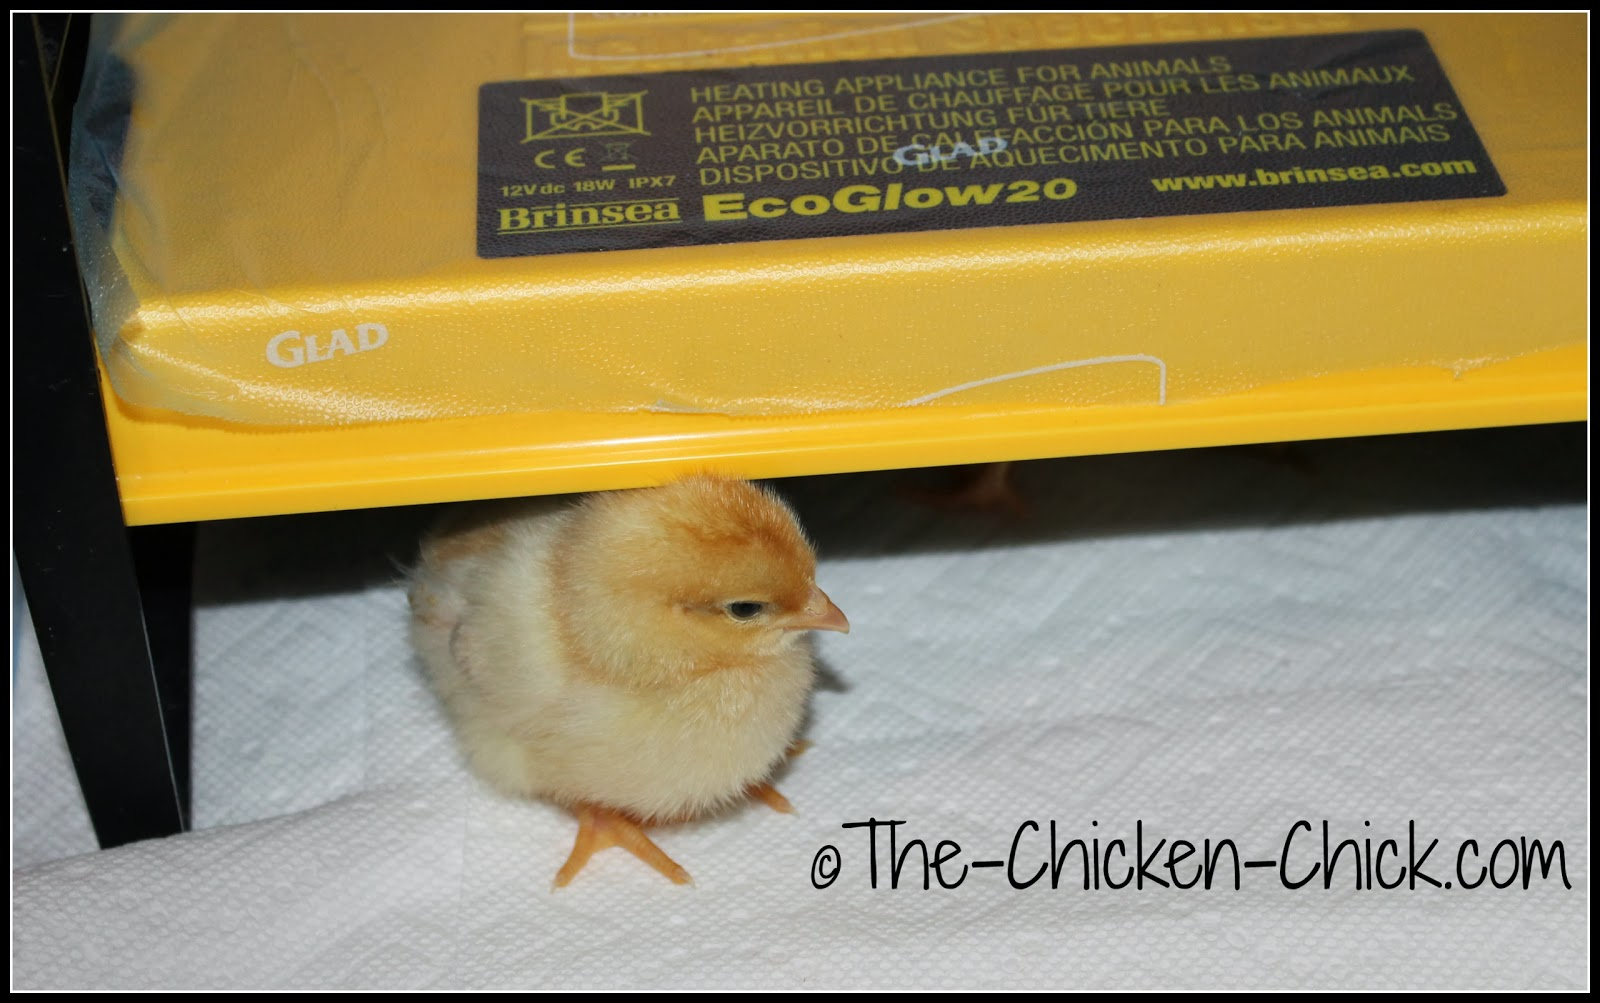 Brinsea EcoGlow Brooder keeps chicks warm without overheating them.